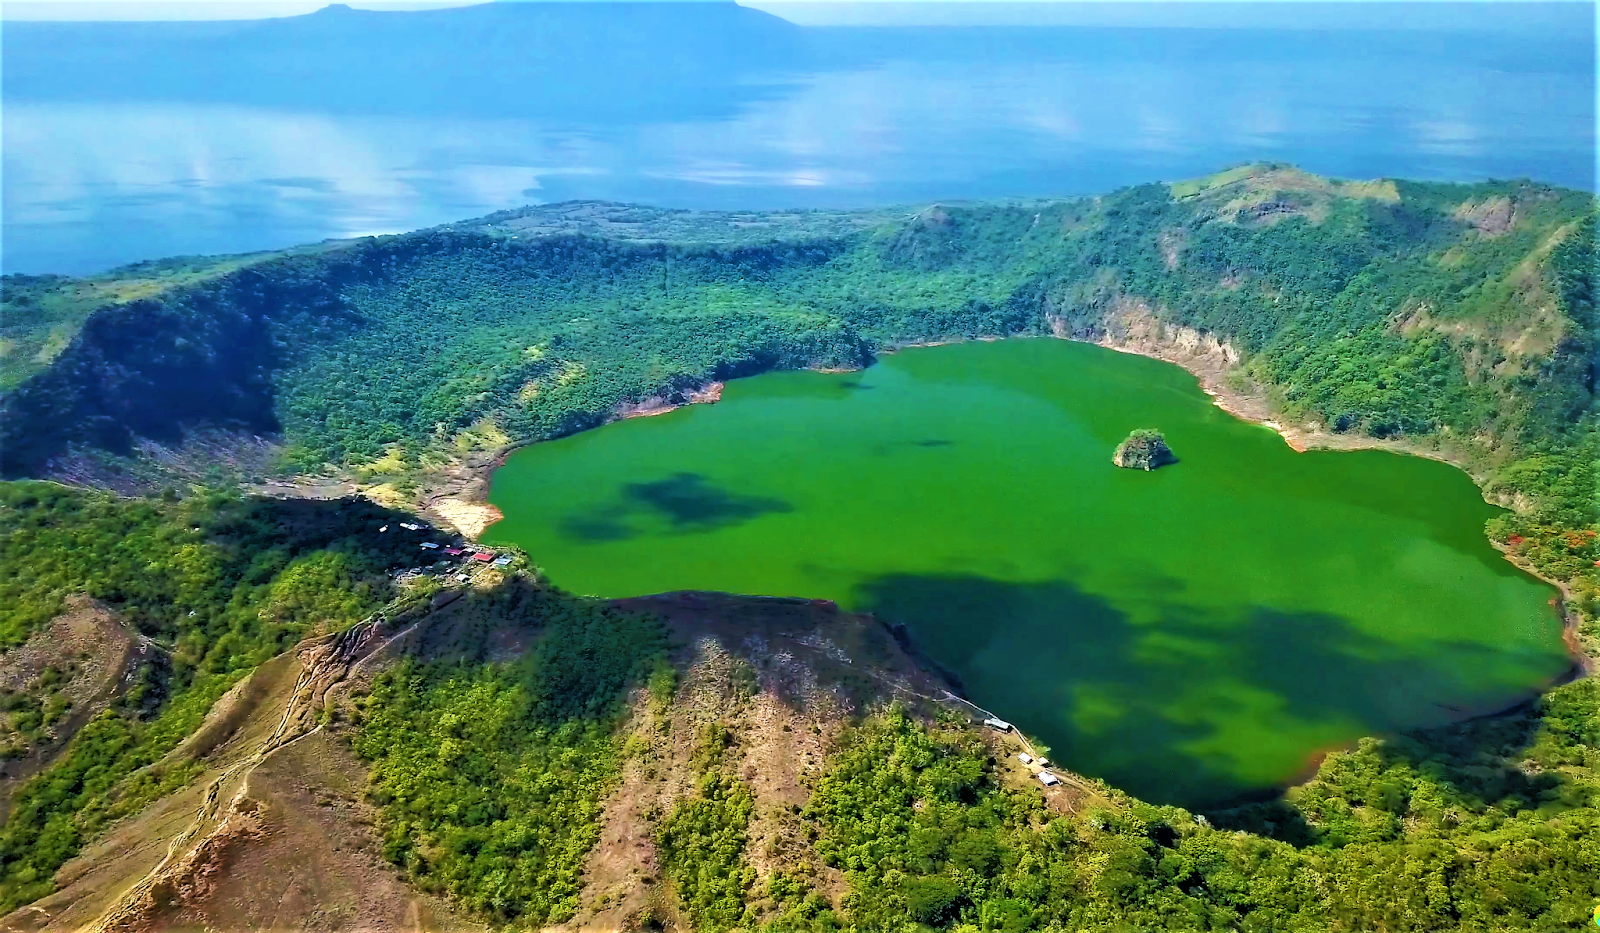 Philippines, Taal Volcano eruption 2020.